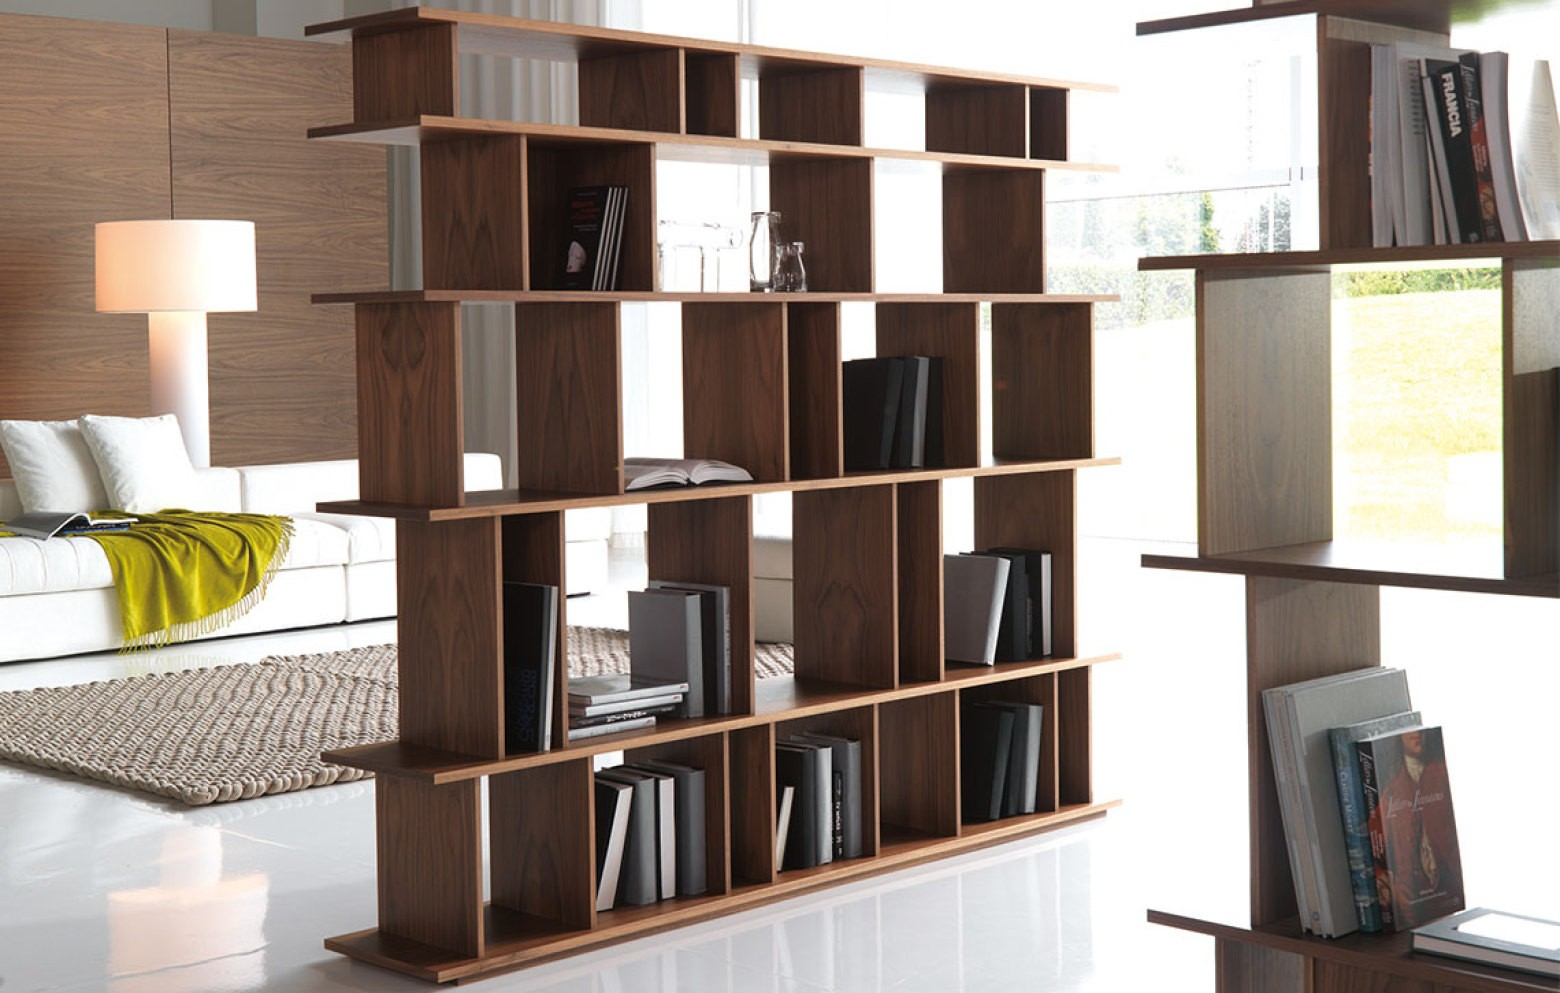 loft regal vitrinen regale sideboards wohnw nde who 39 s perfect. Black Bedroom Furniture Sets. Home Design Ideas